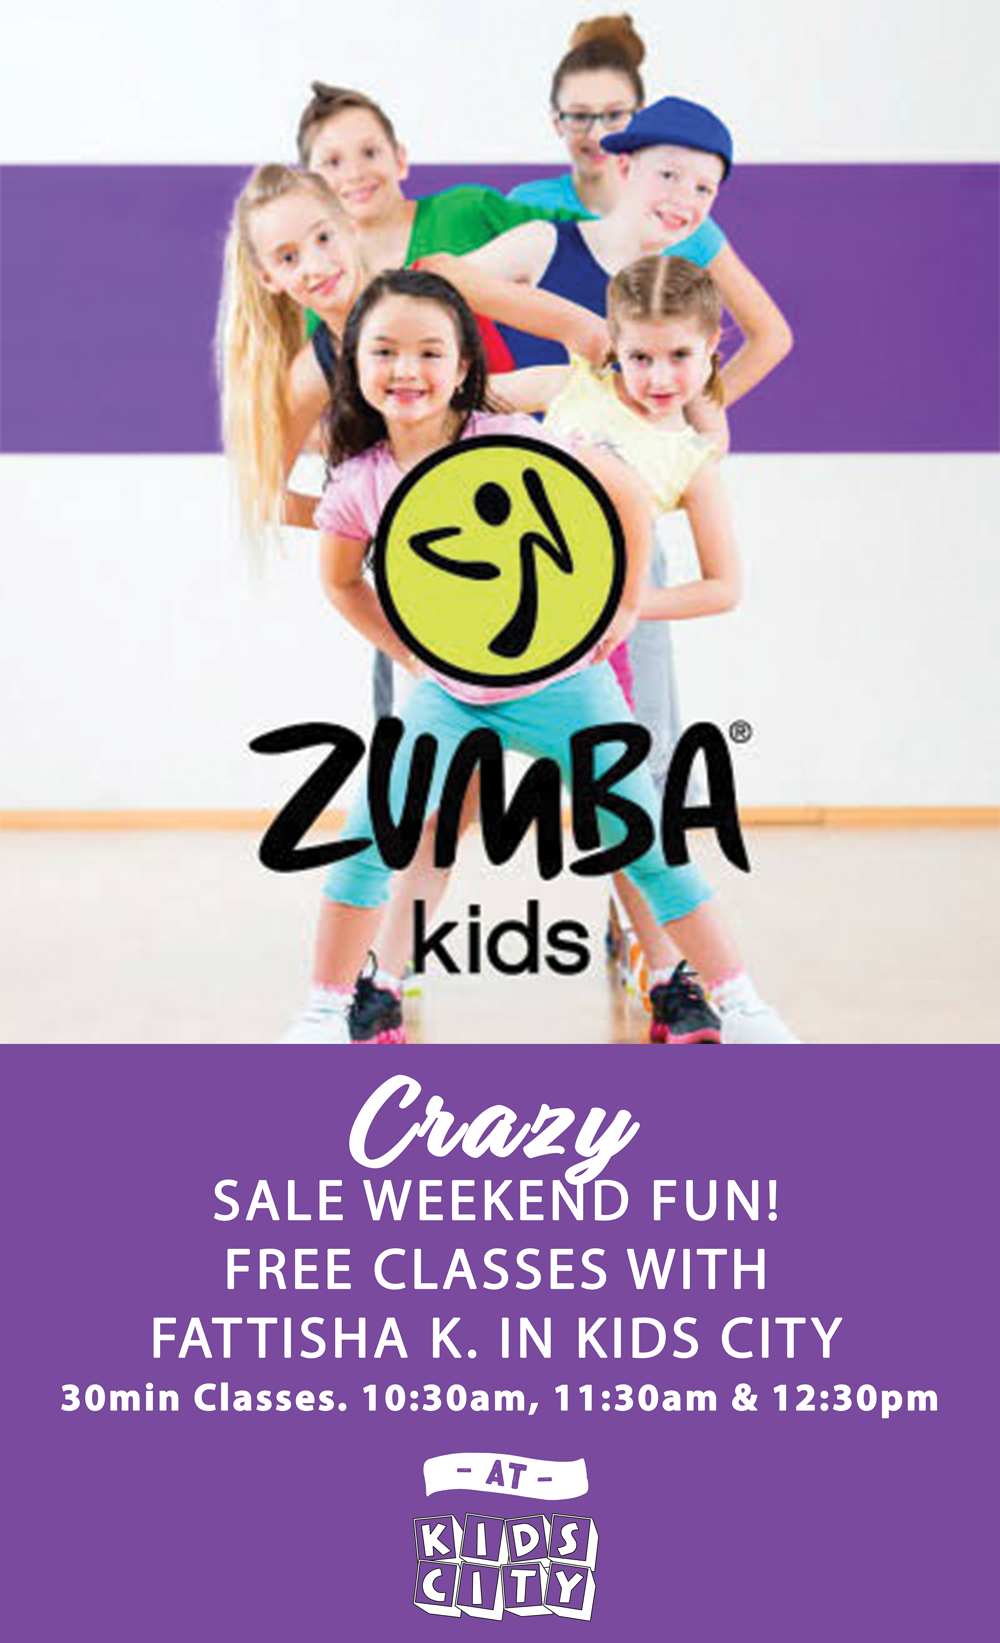 ZUMBA KIDS with Fattisha K!